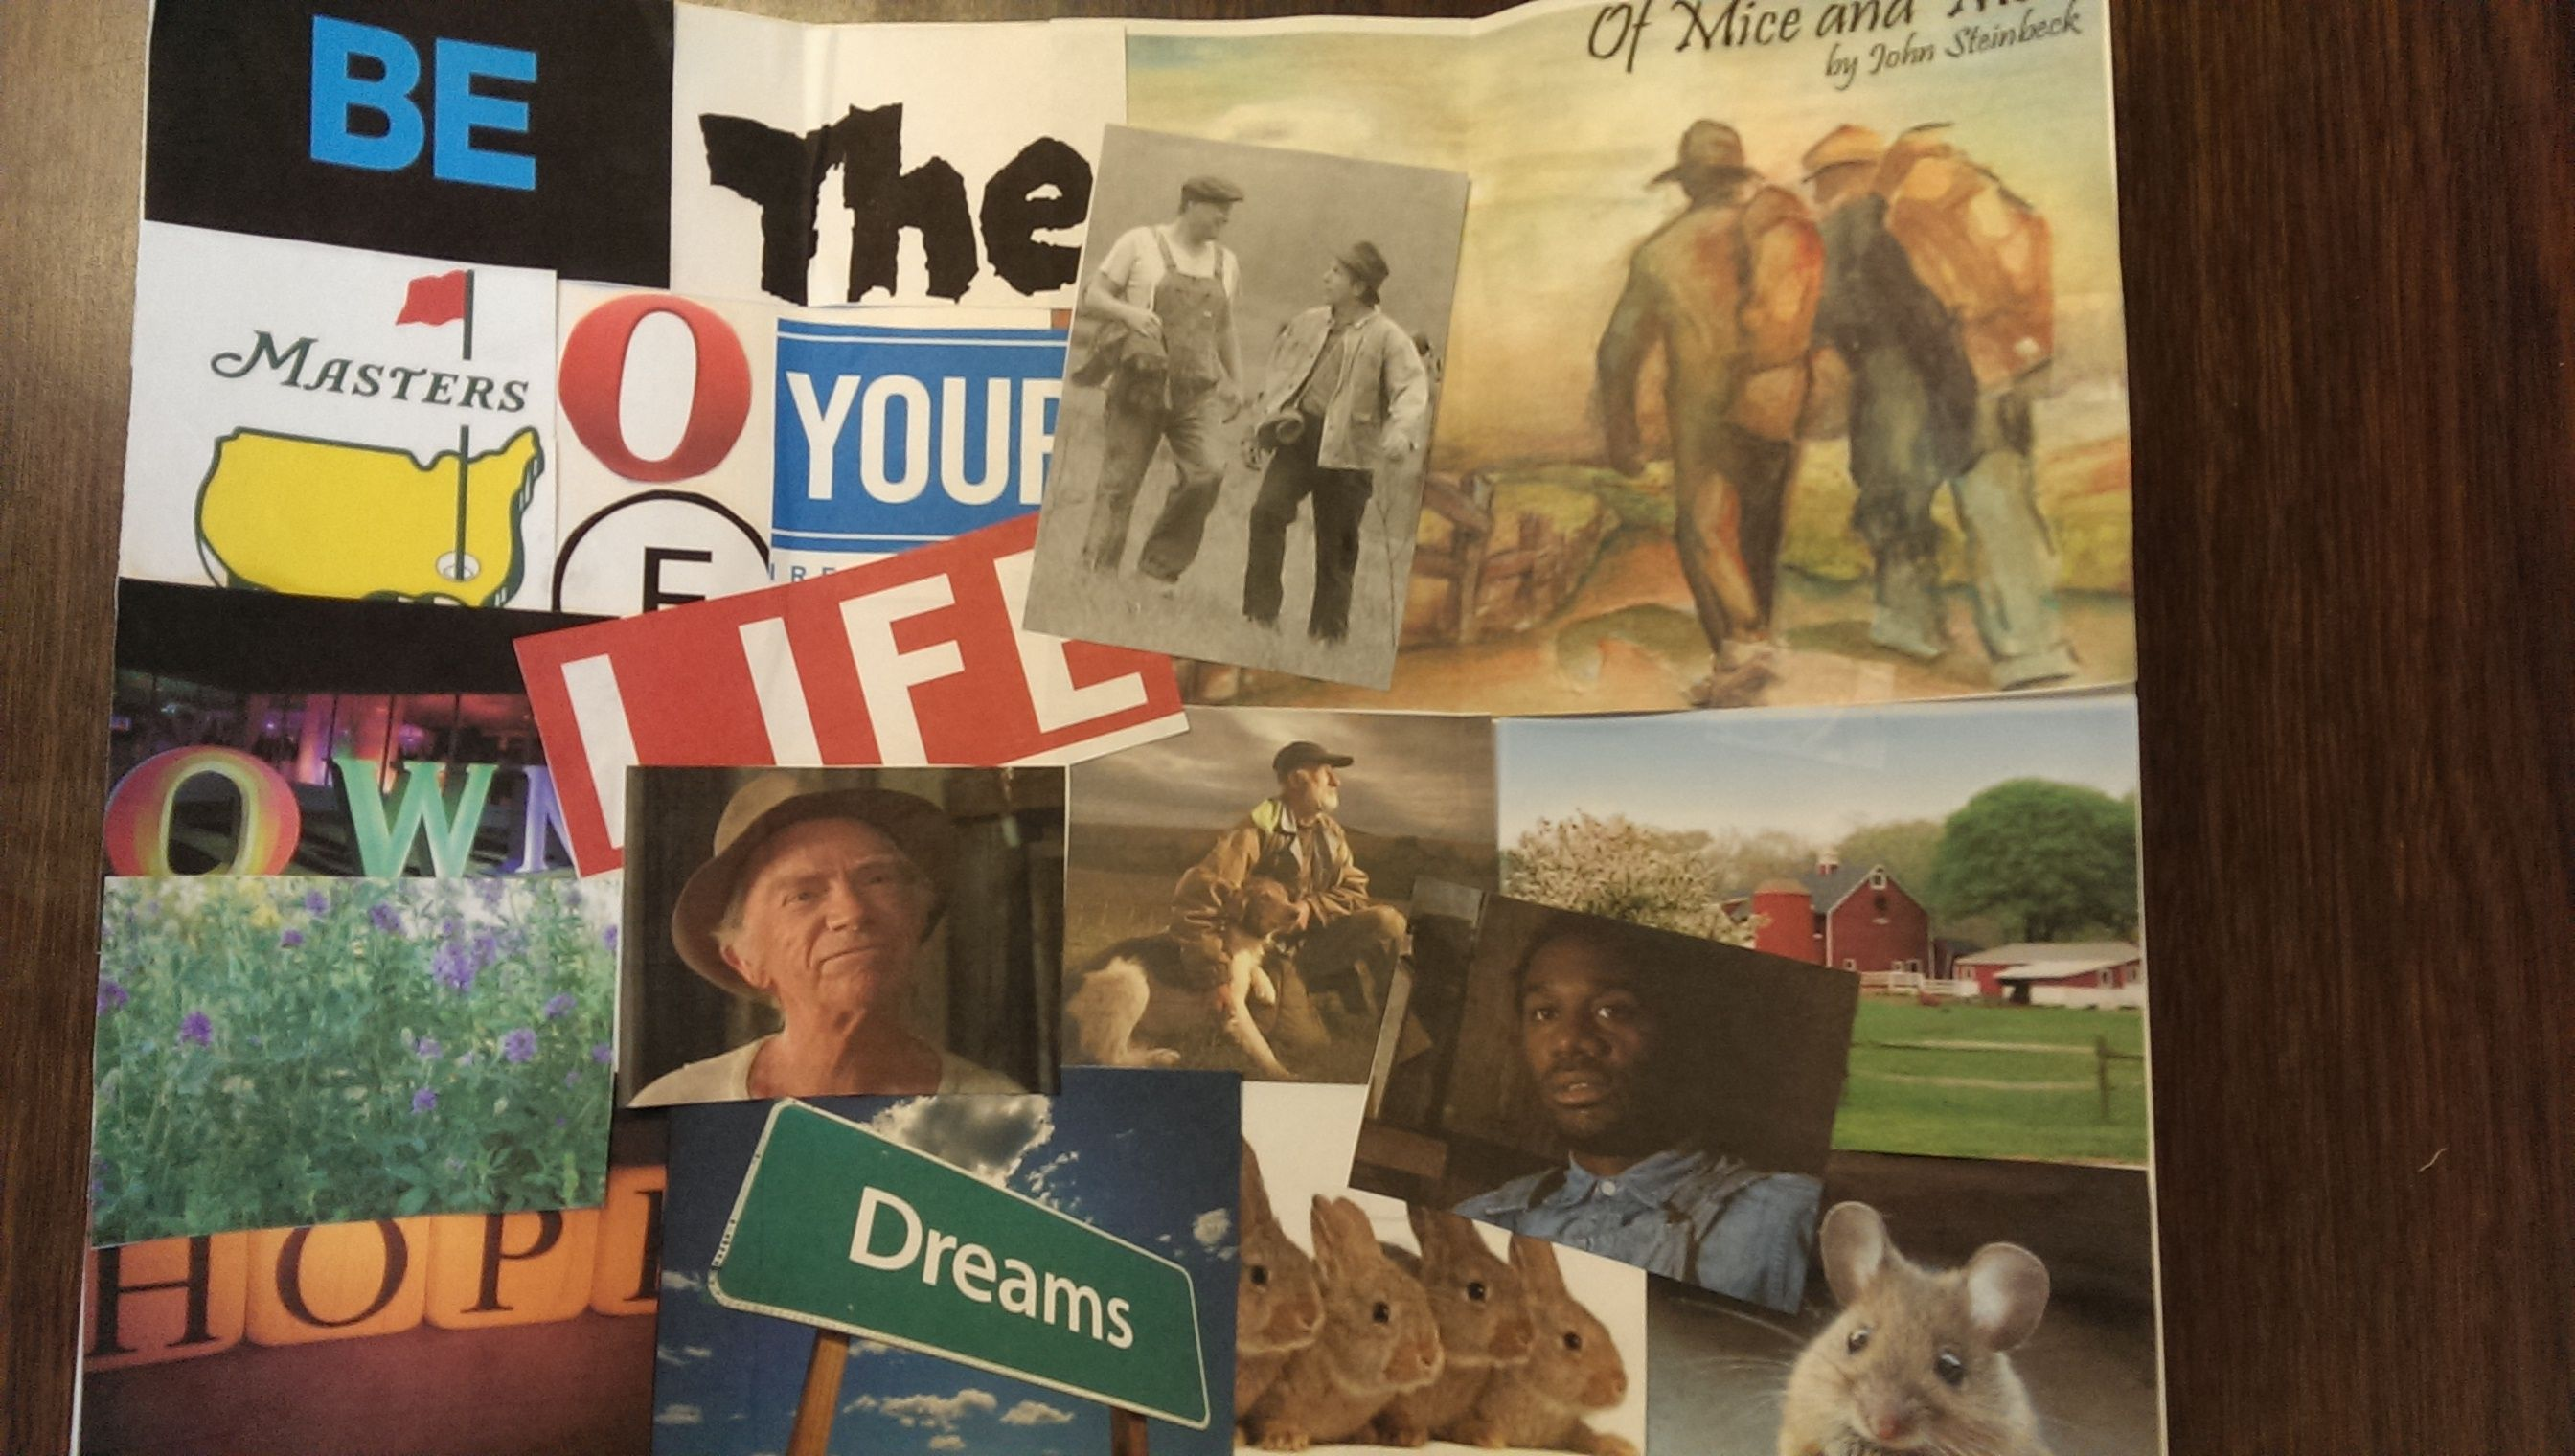 of mice and men project create a collage that captures one of mice and men project create a collage that captures one important aspect of the